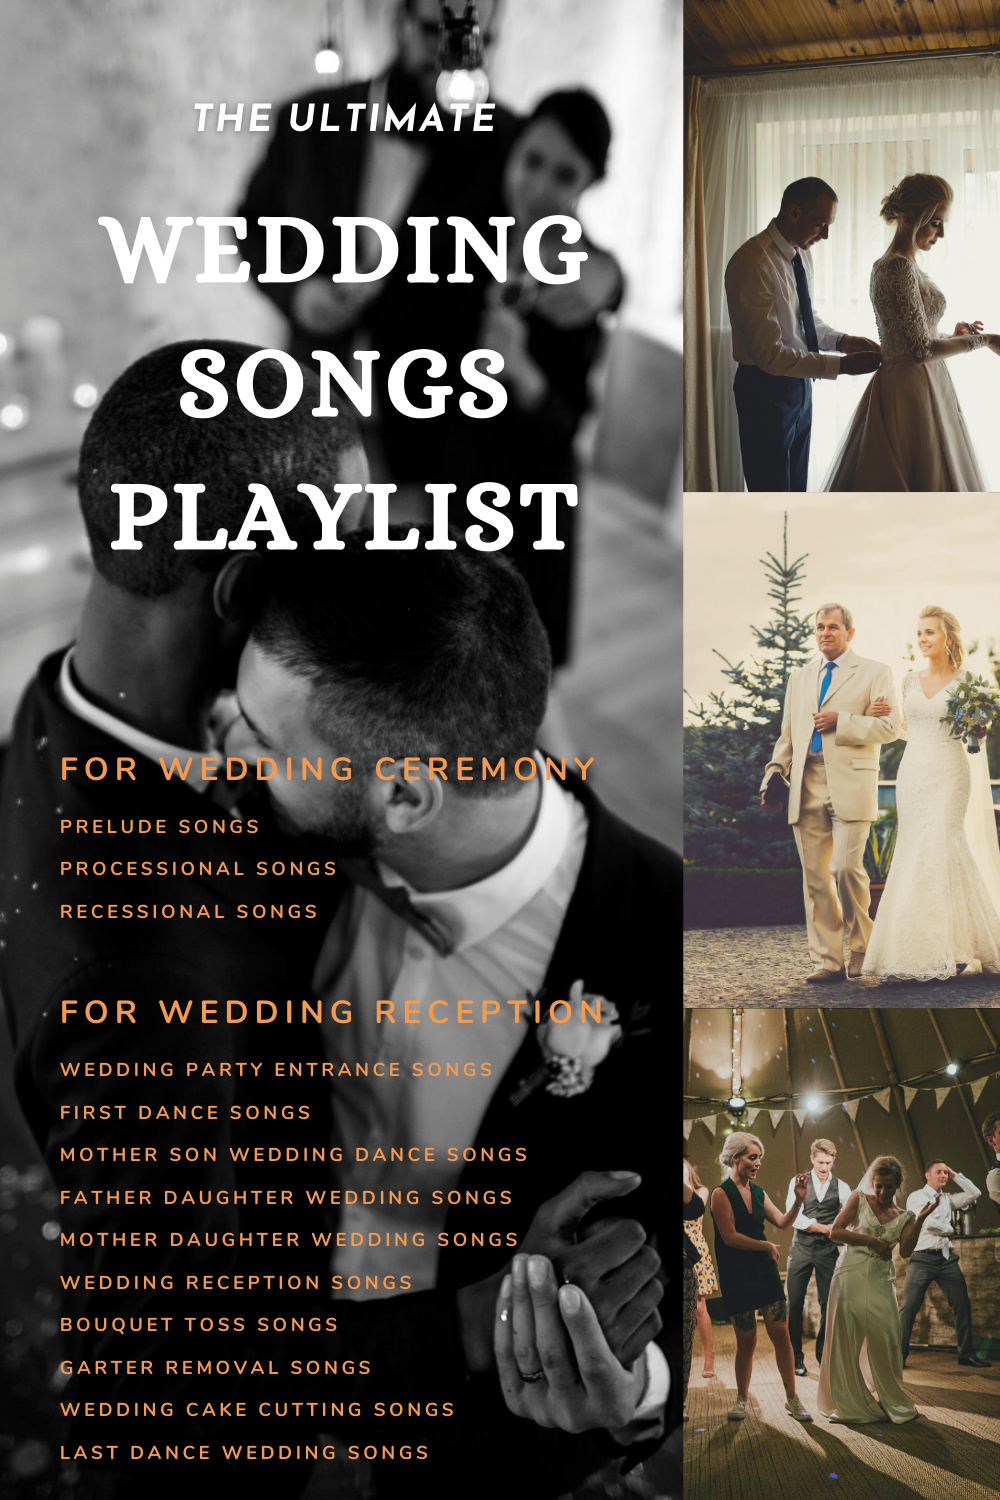 Best Wedding Songs 2020 The Ultimate Playlist For Every Moment Of The Day In 2020 Wedding Songs Processional Songs Wedding Song Playlist